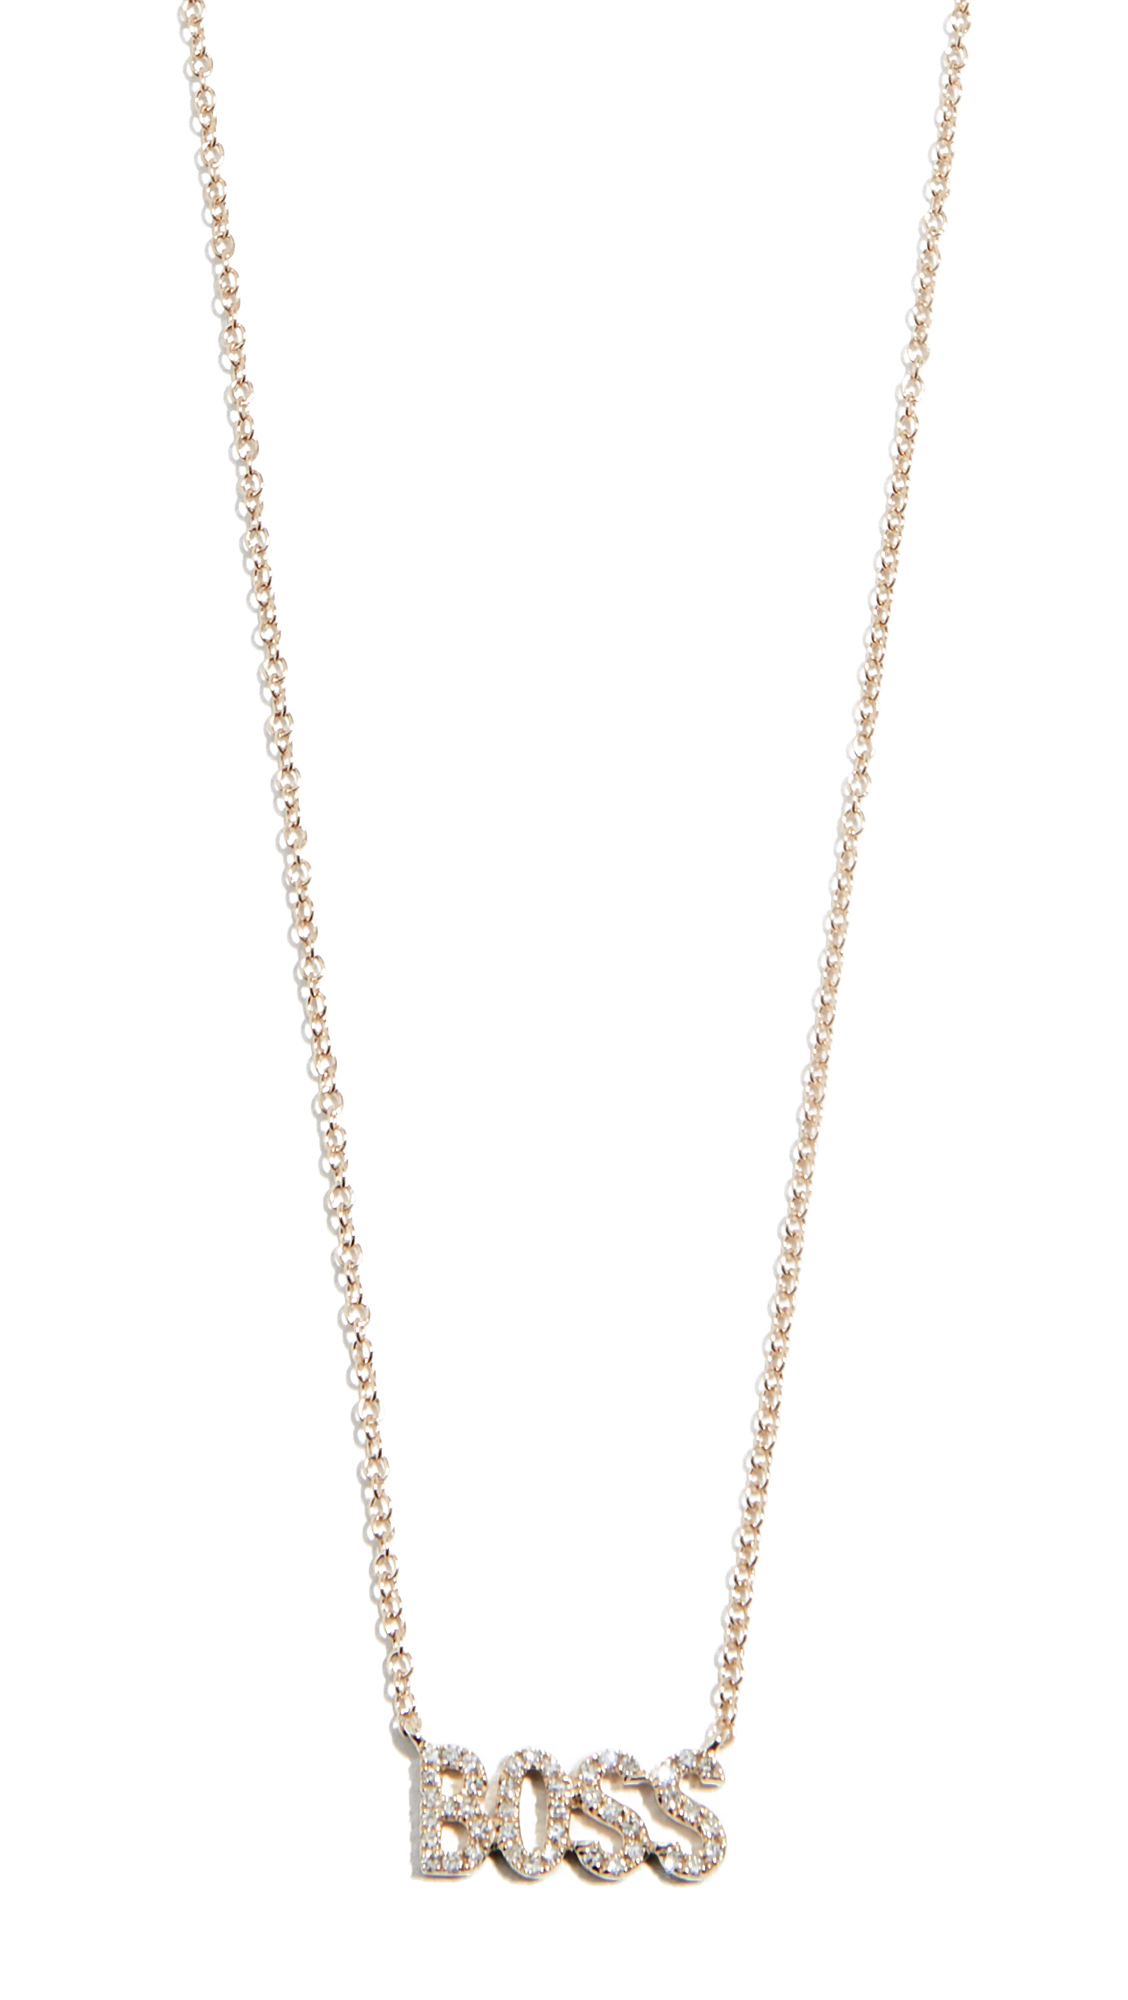 Ef Collection 14k Diamond Boss Necklace